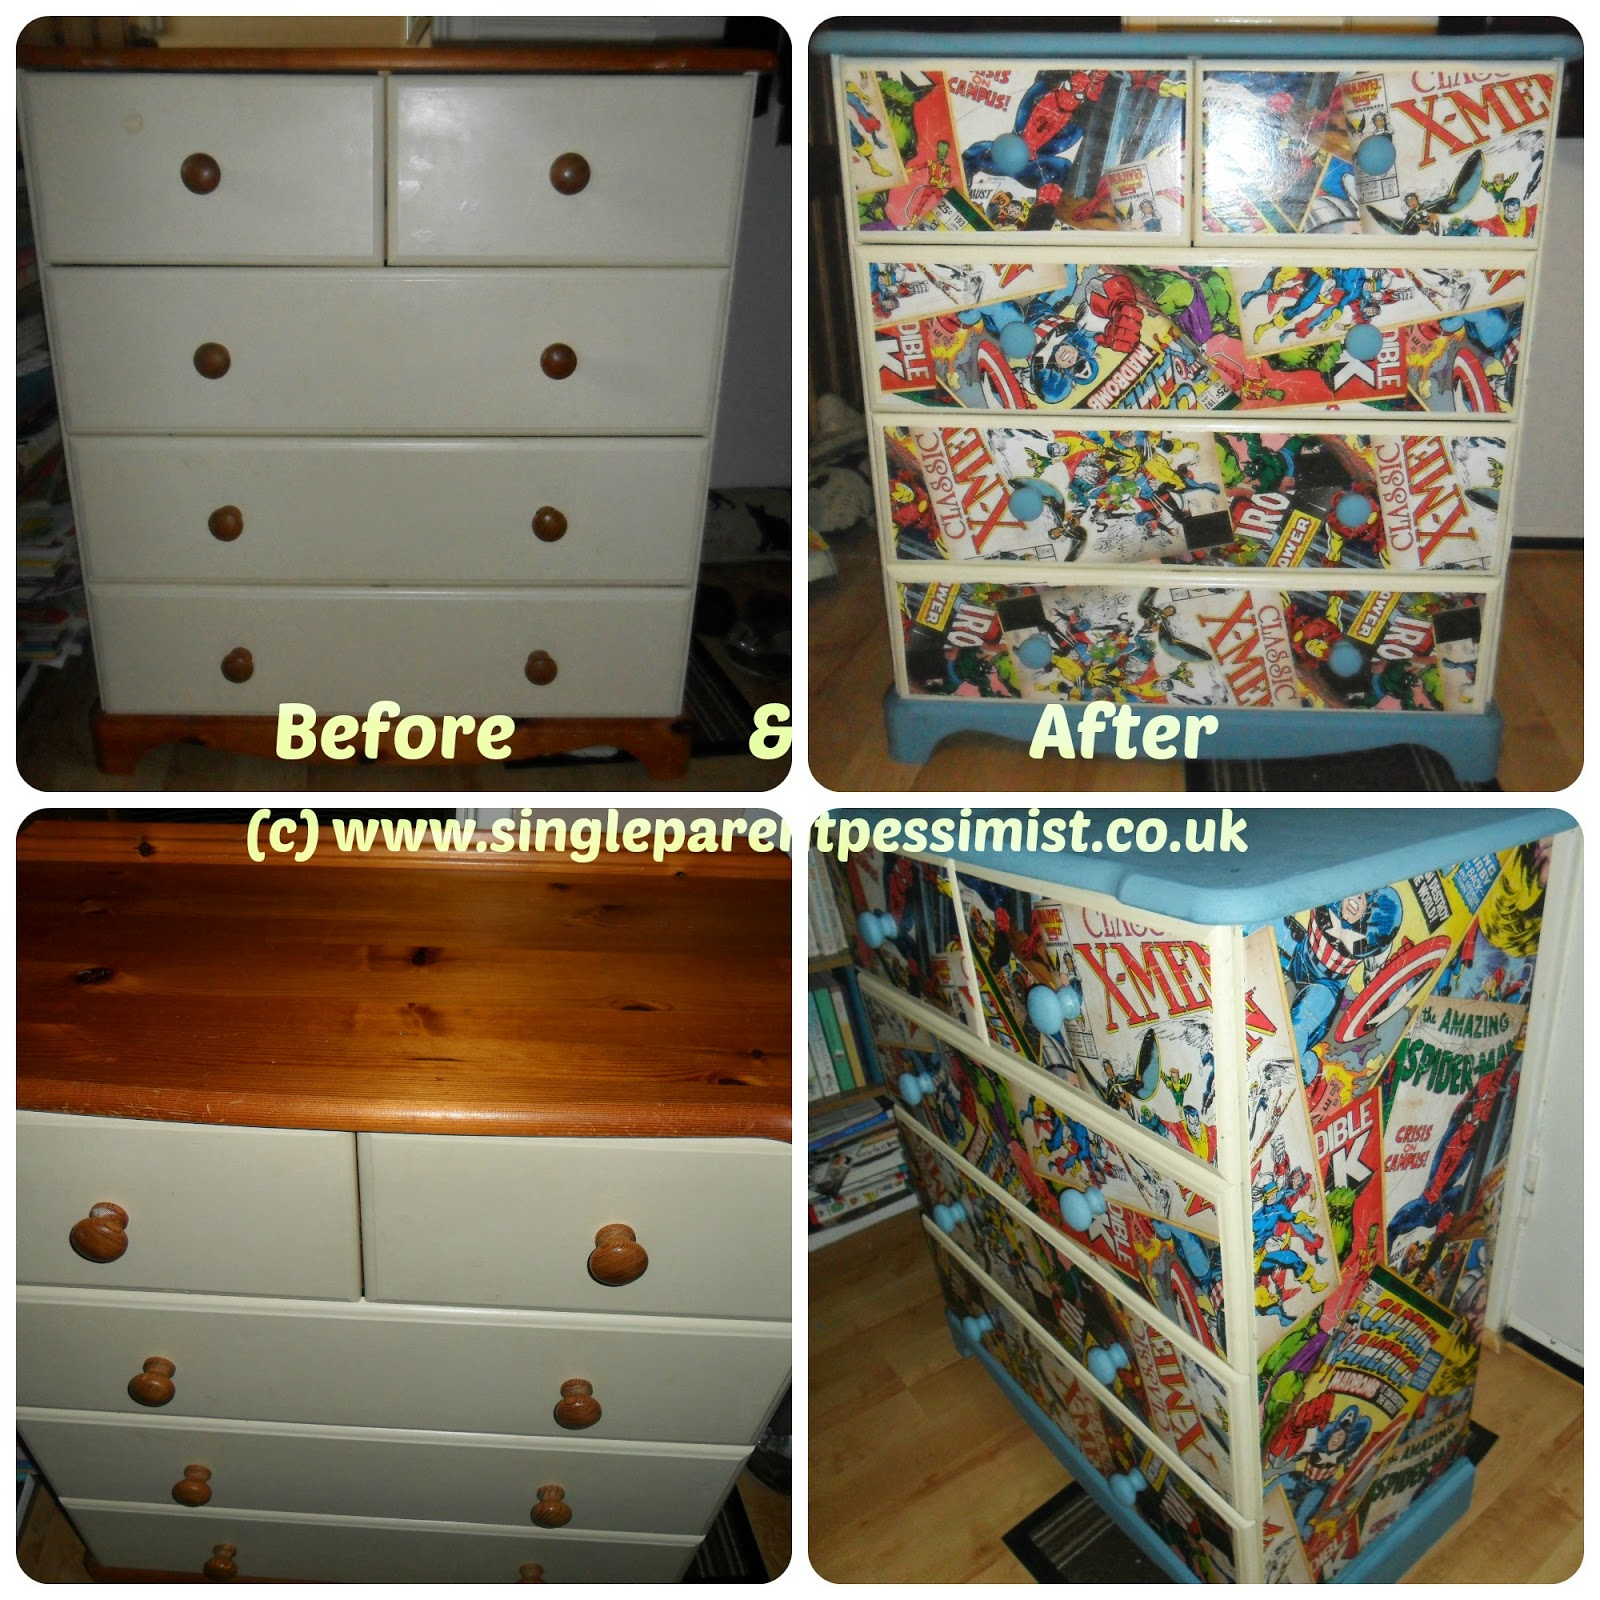 Confessions of a Single Parent Pessimist: DIY/ UPCYCLING: Chunku0026#39;s Chest of Drawers